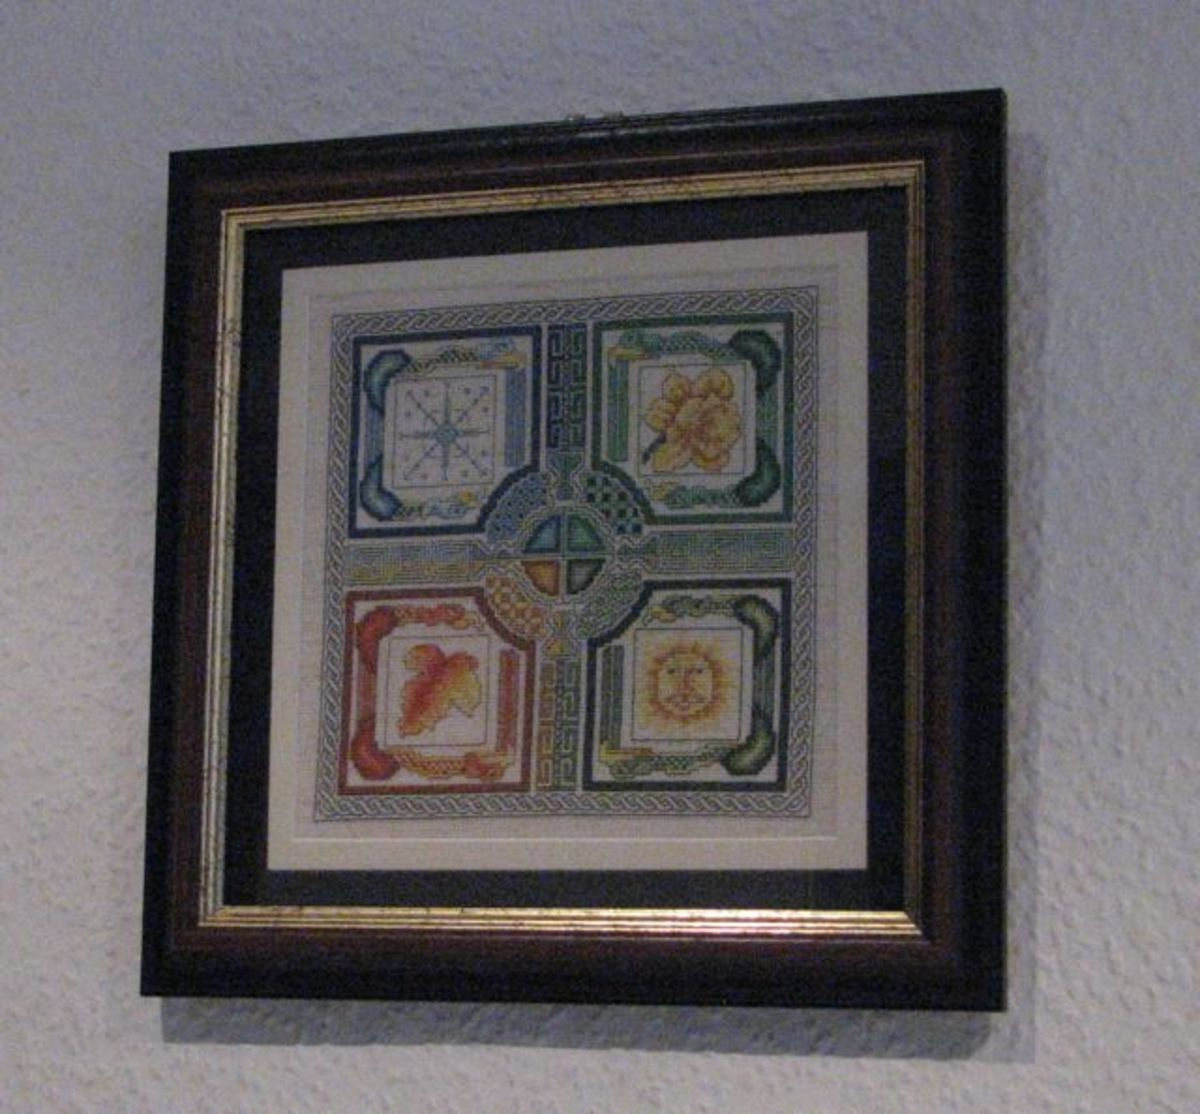 Cross stitch framing finished, now hanging!